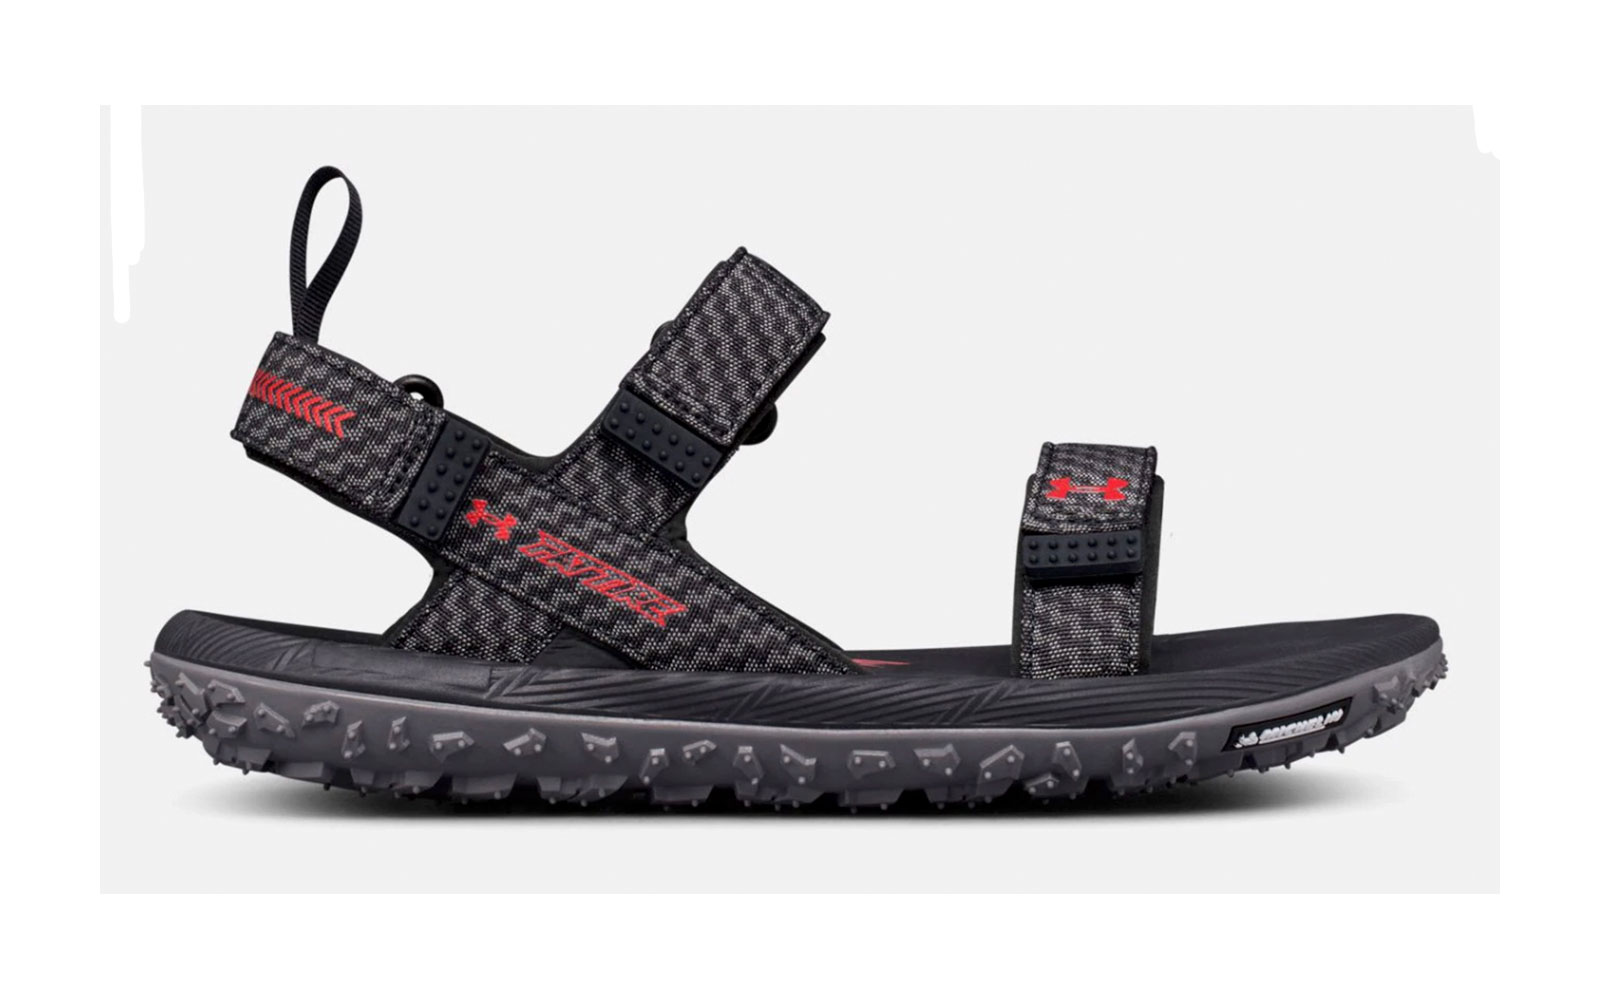 Under Armour Fat Tire Sandals